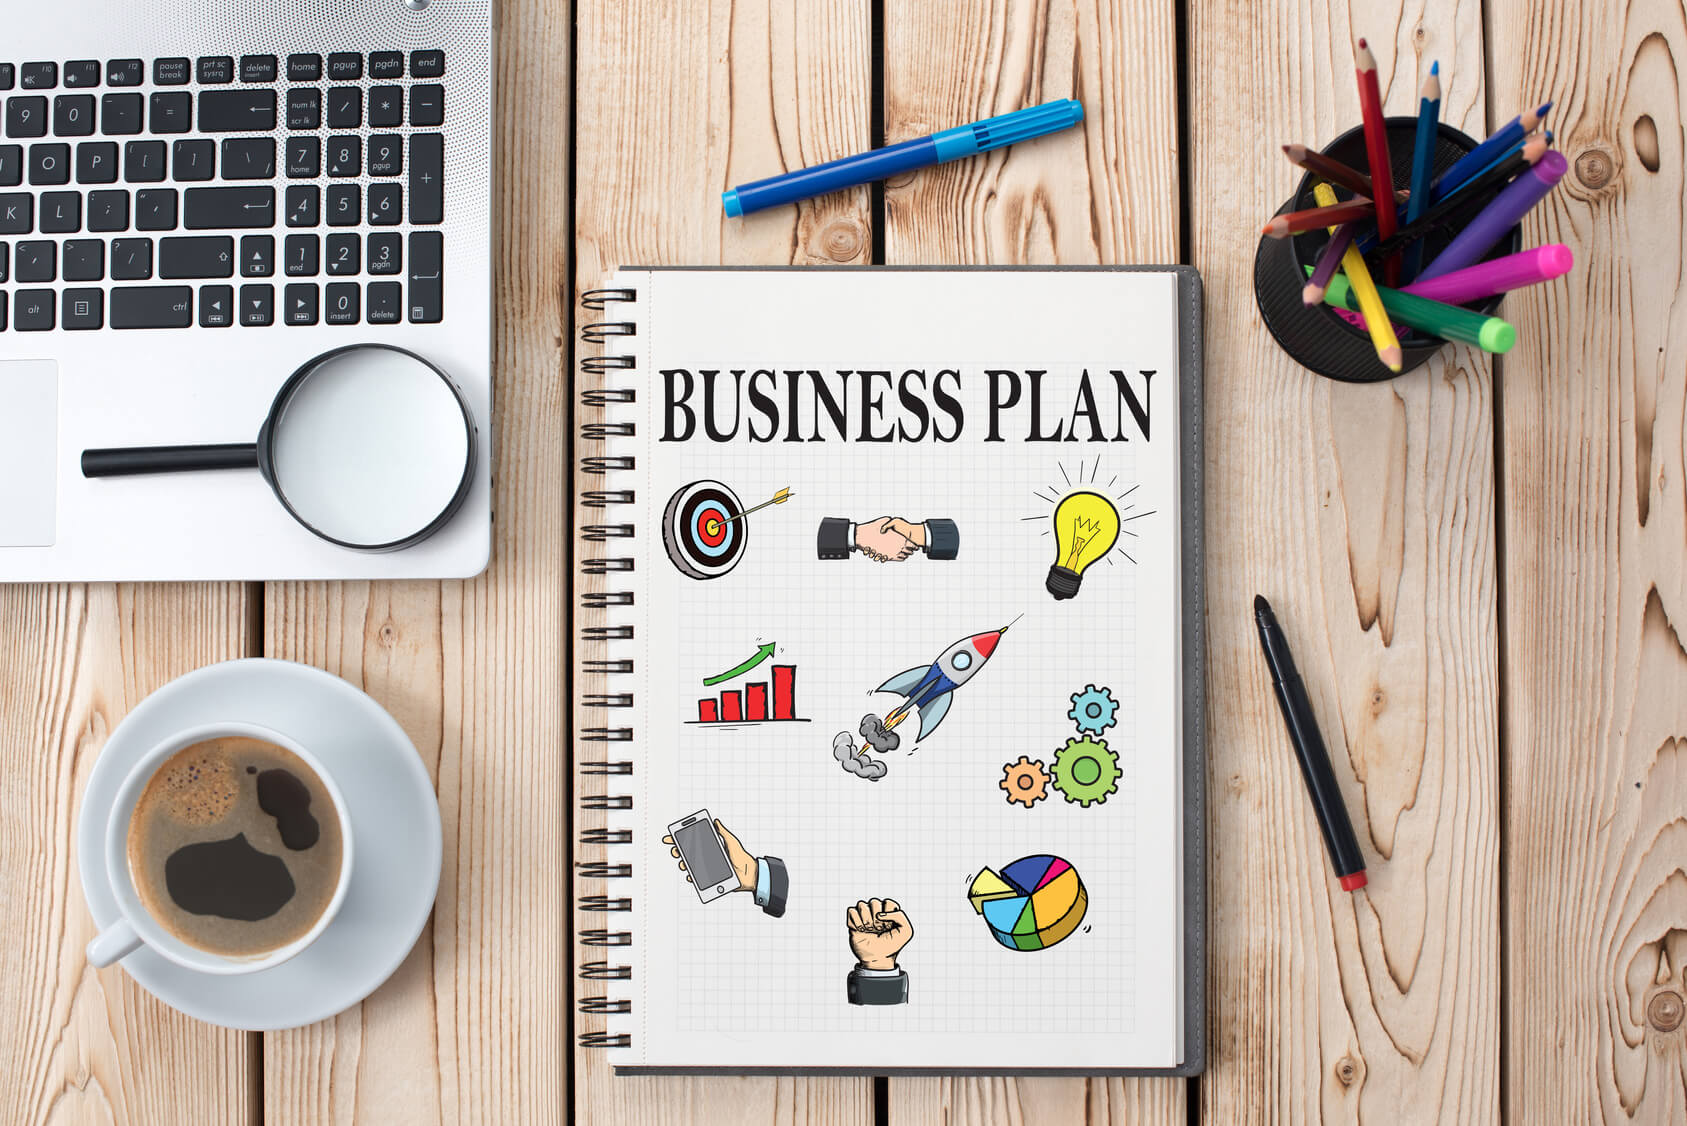 9 Tips to Help You Prepare a Business Plan